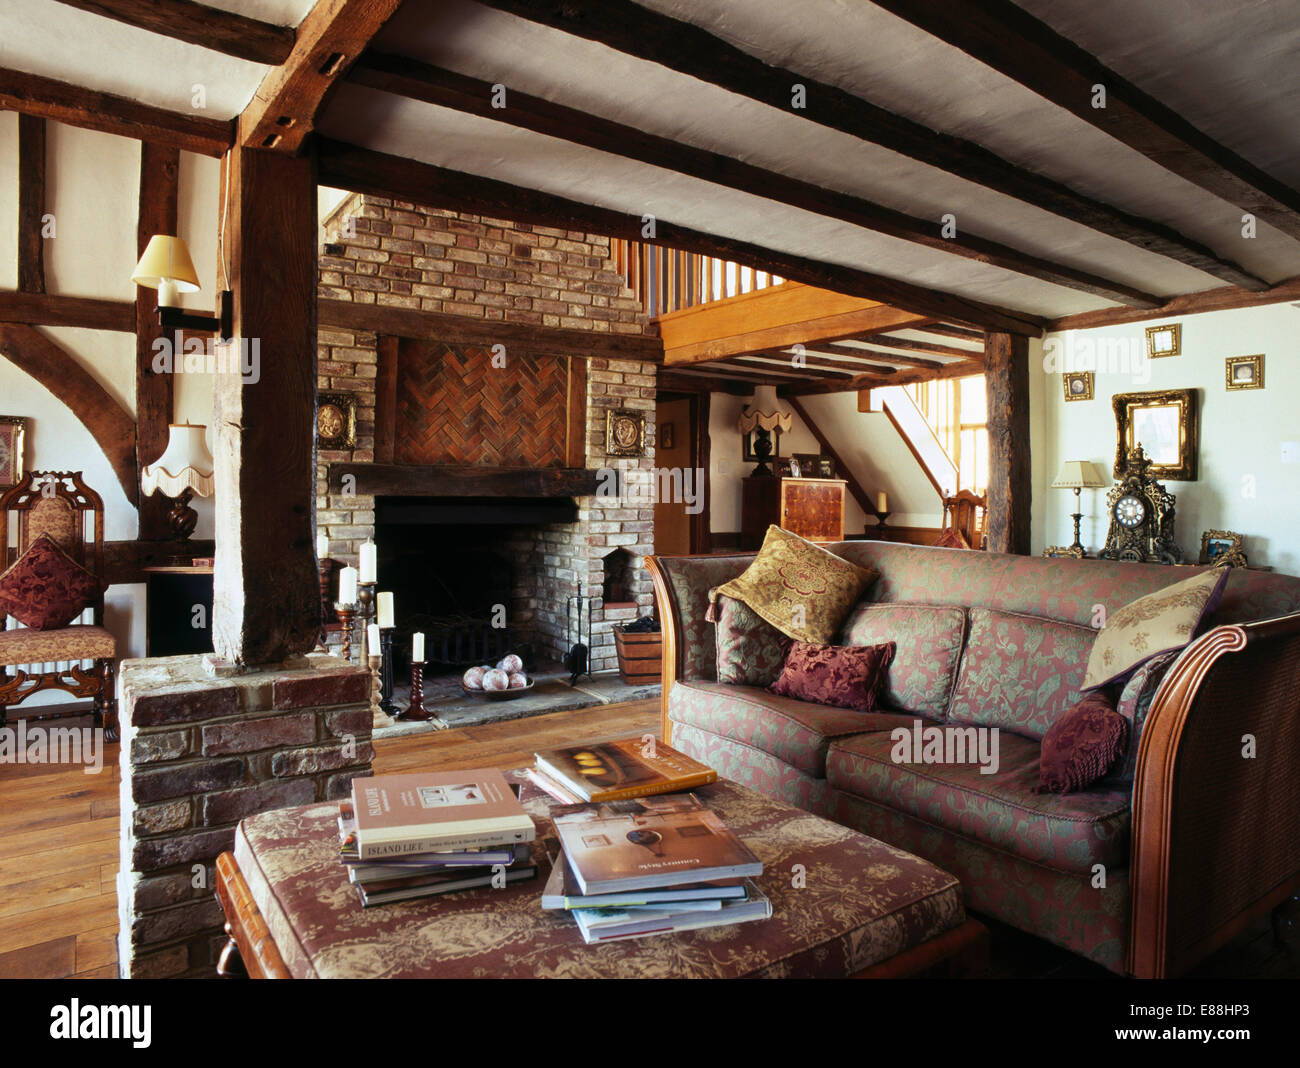 patterned sofa in living room with brick fireplace and exposed